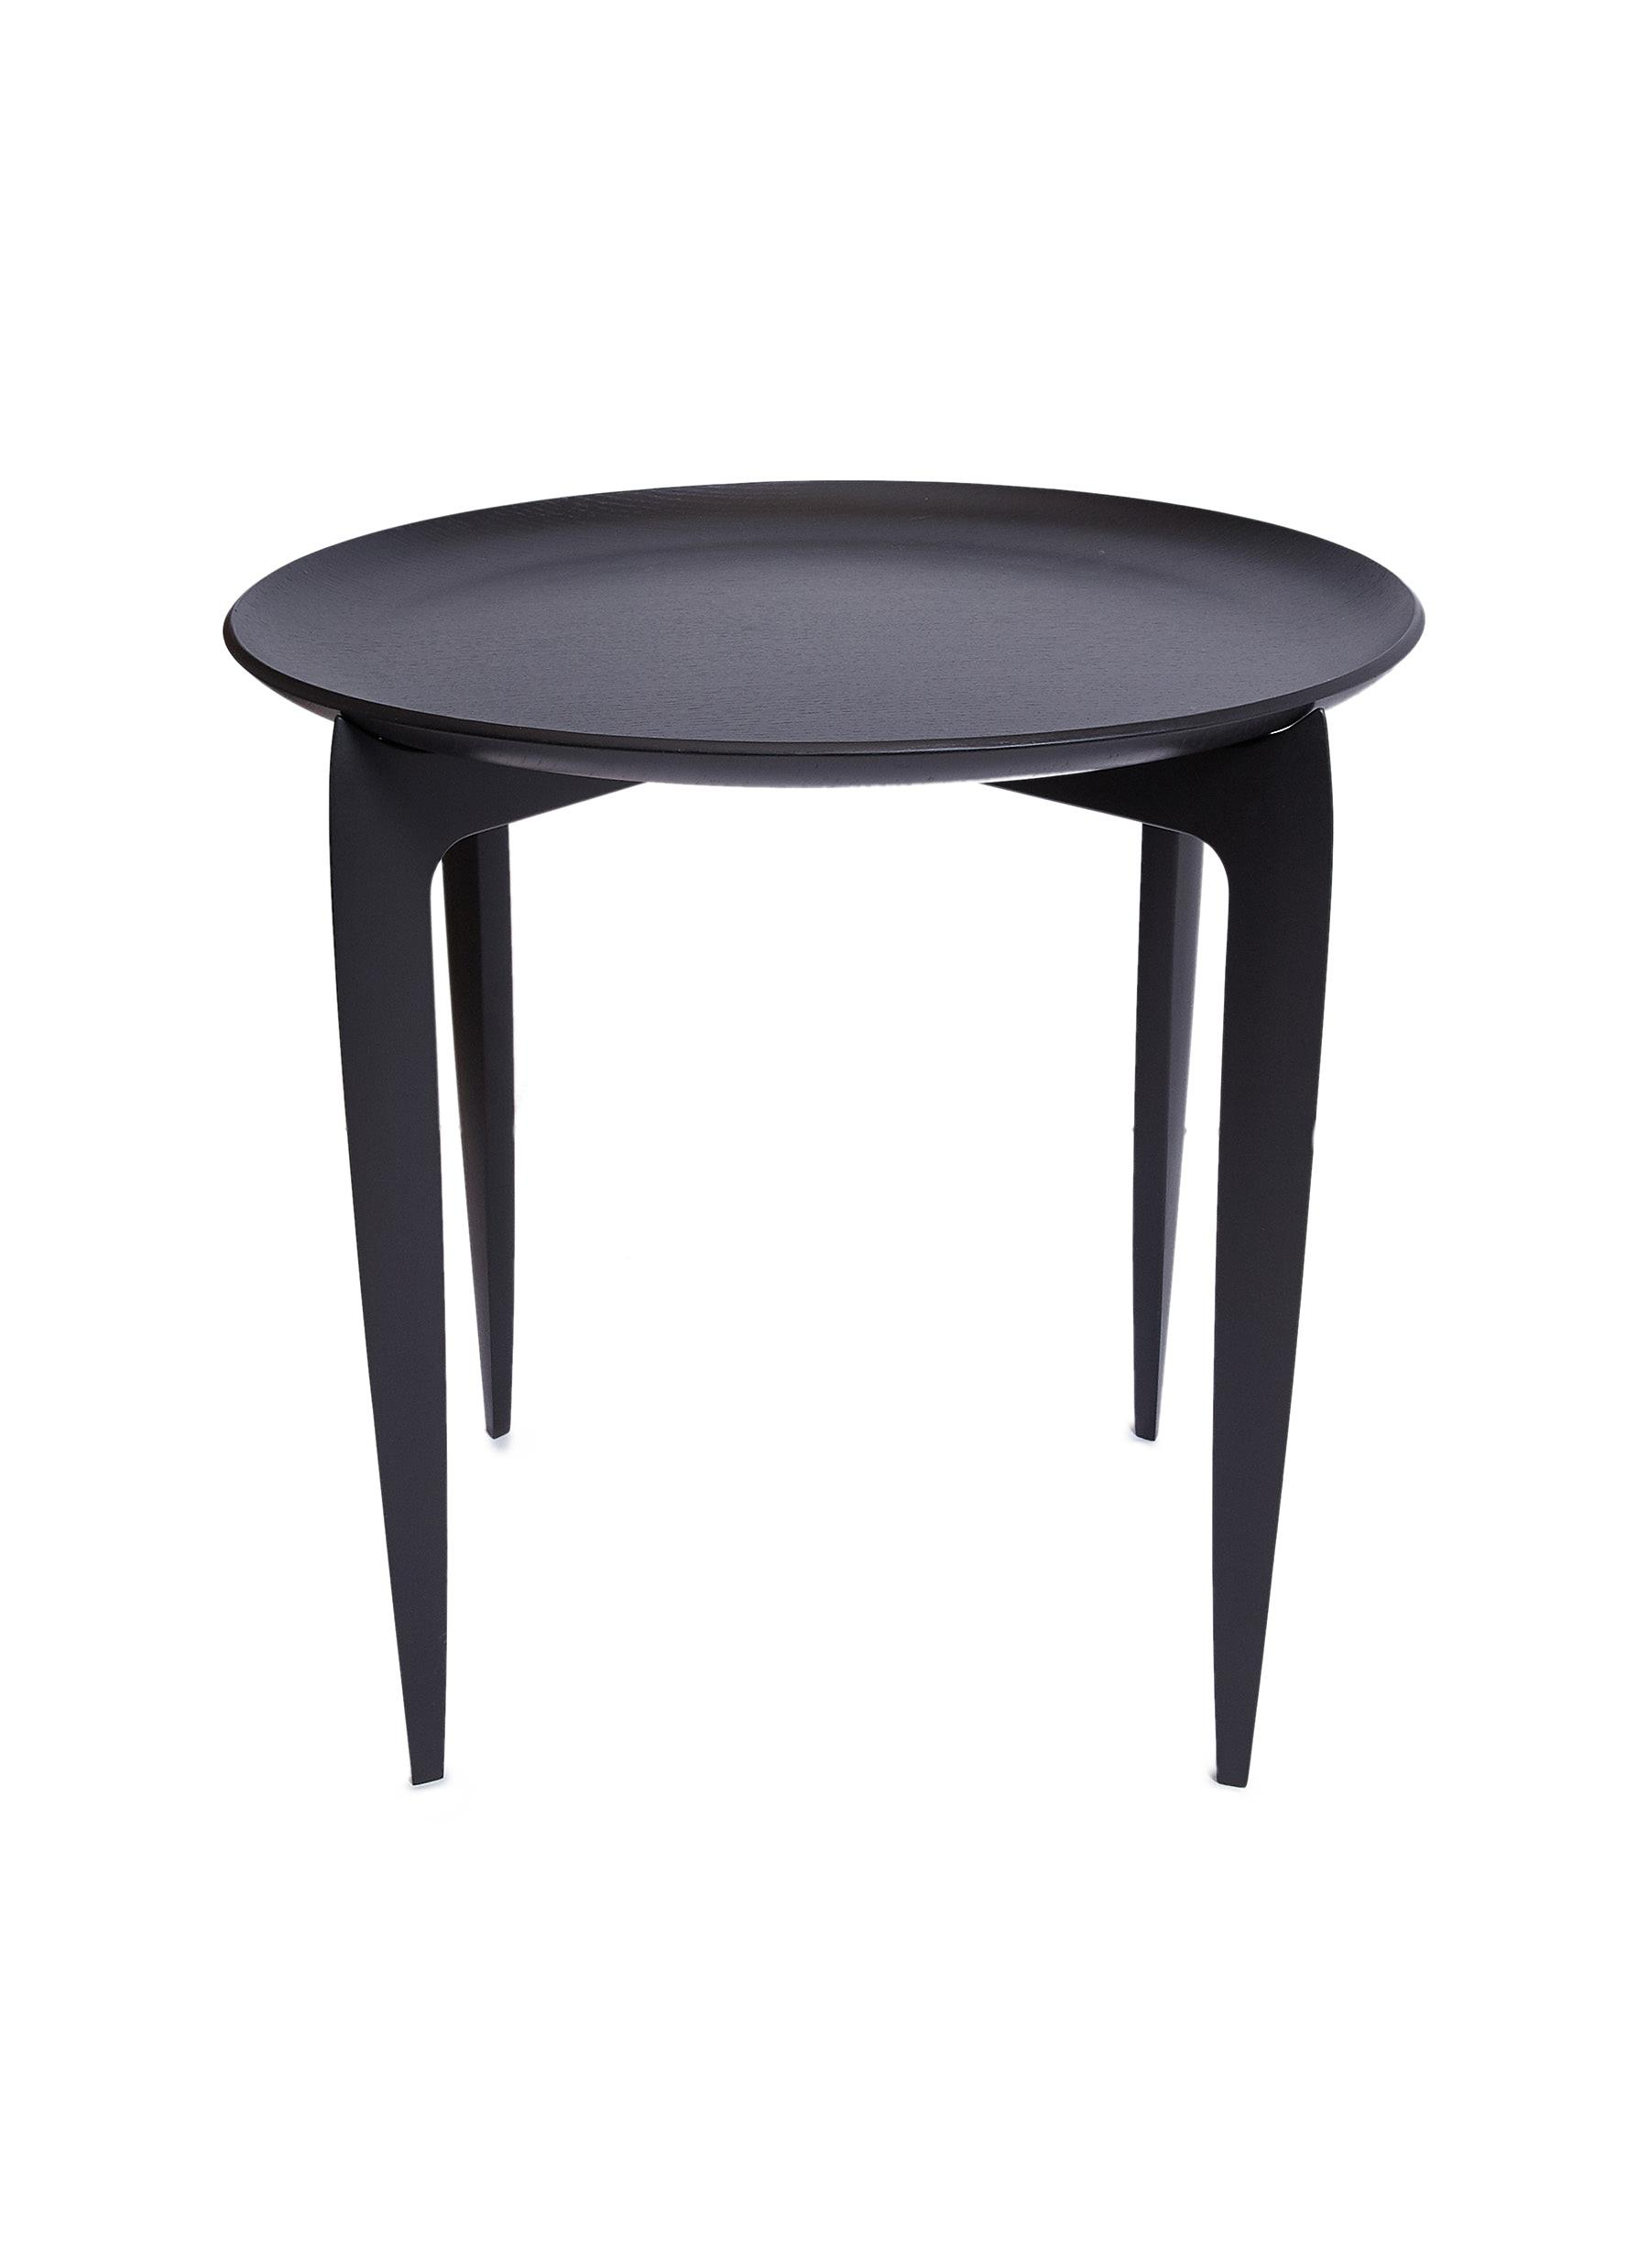 Main View - Click To Enlarge - Republic of Fritz Hansen - Foldable tray  table – a56d1a78f3